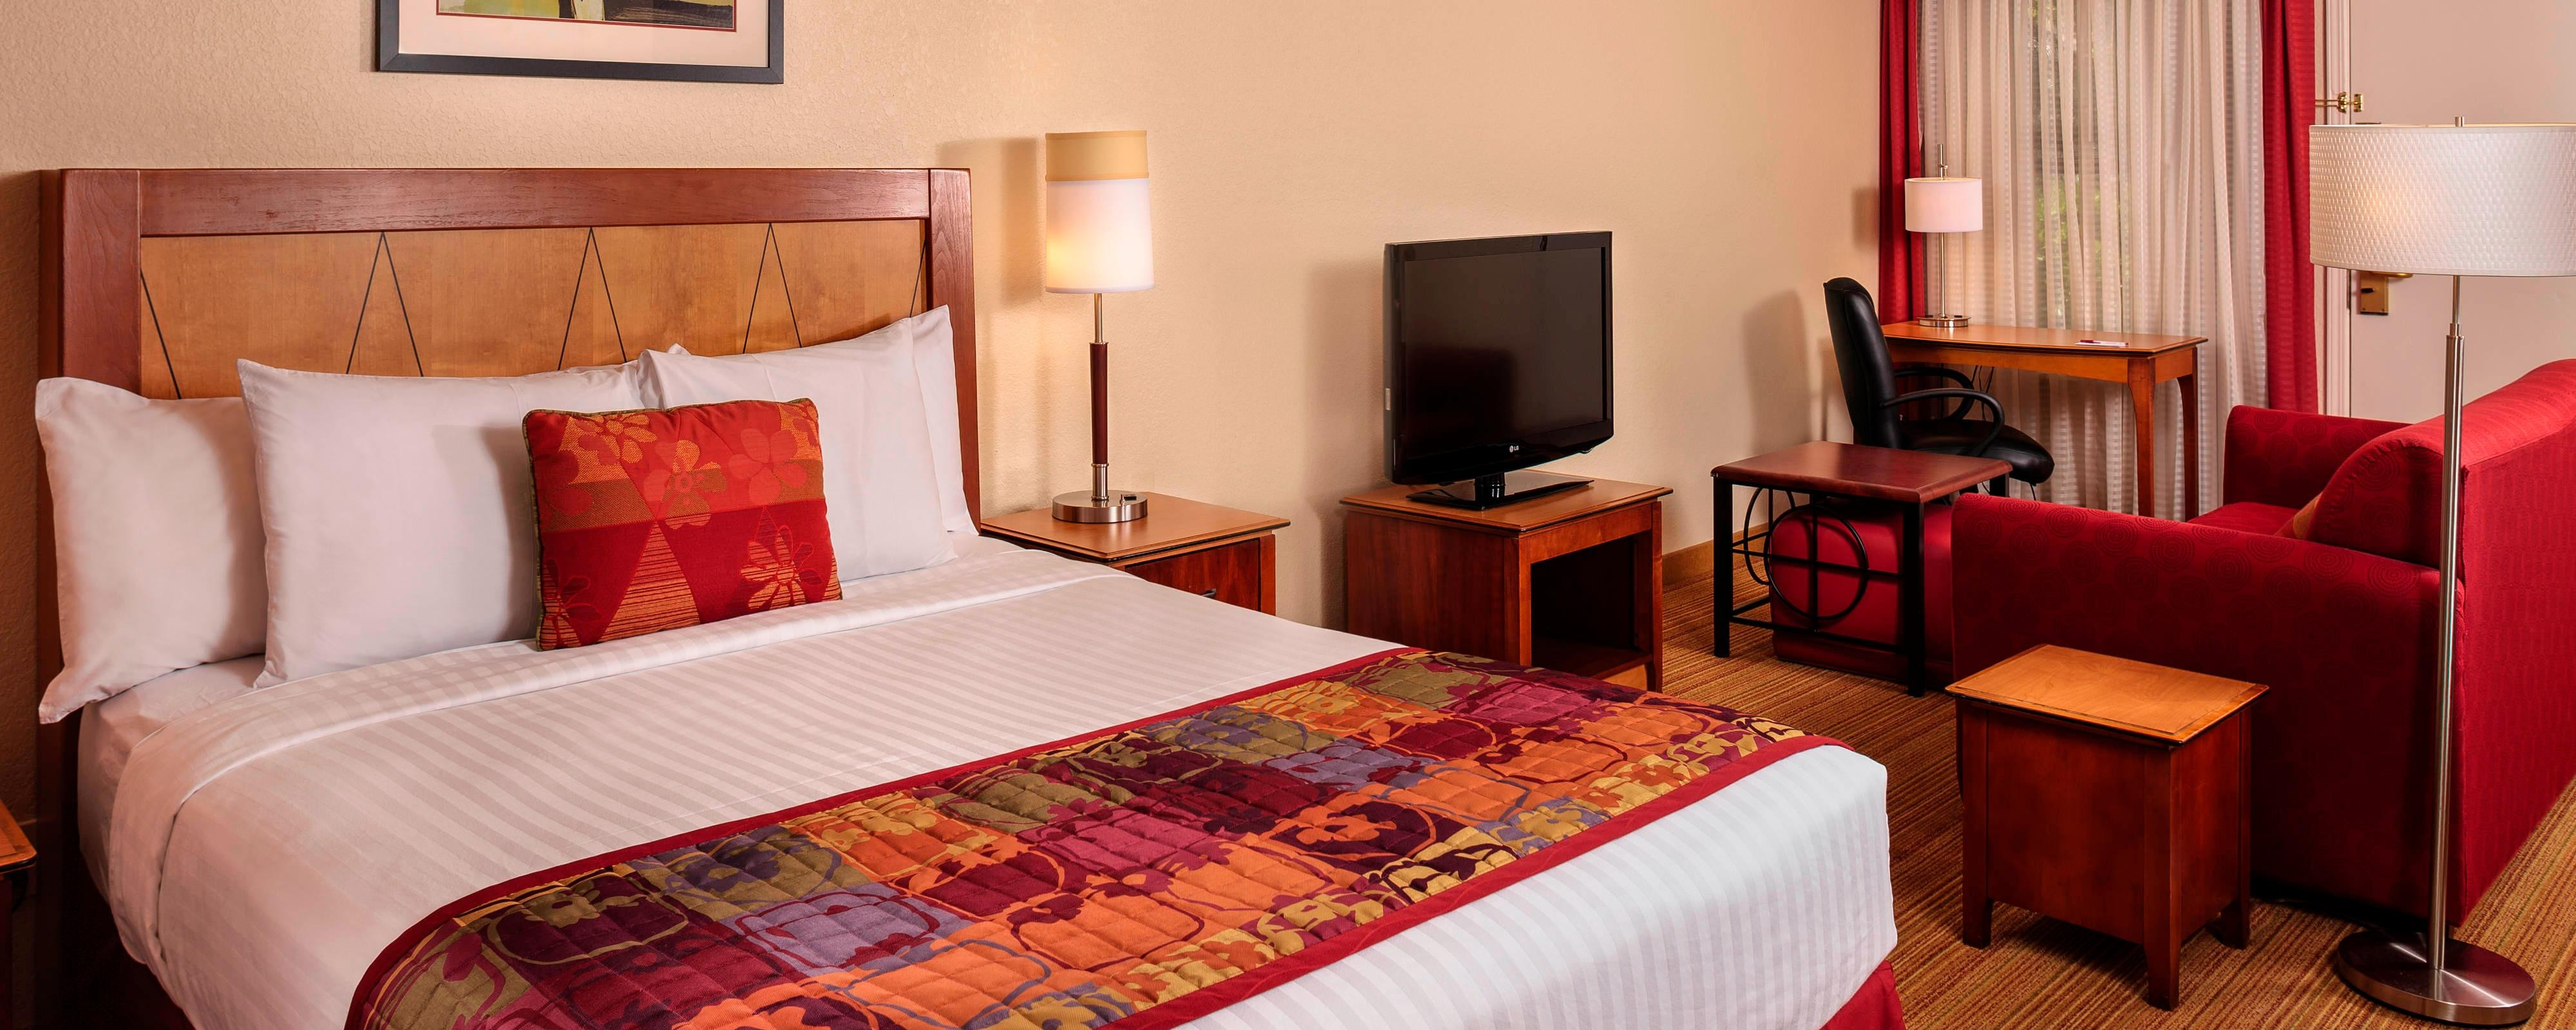 Residence Inn San Jose Studio Suite